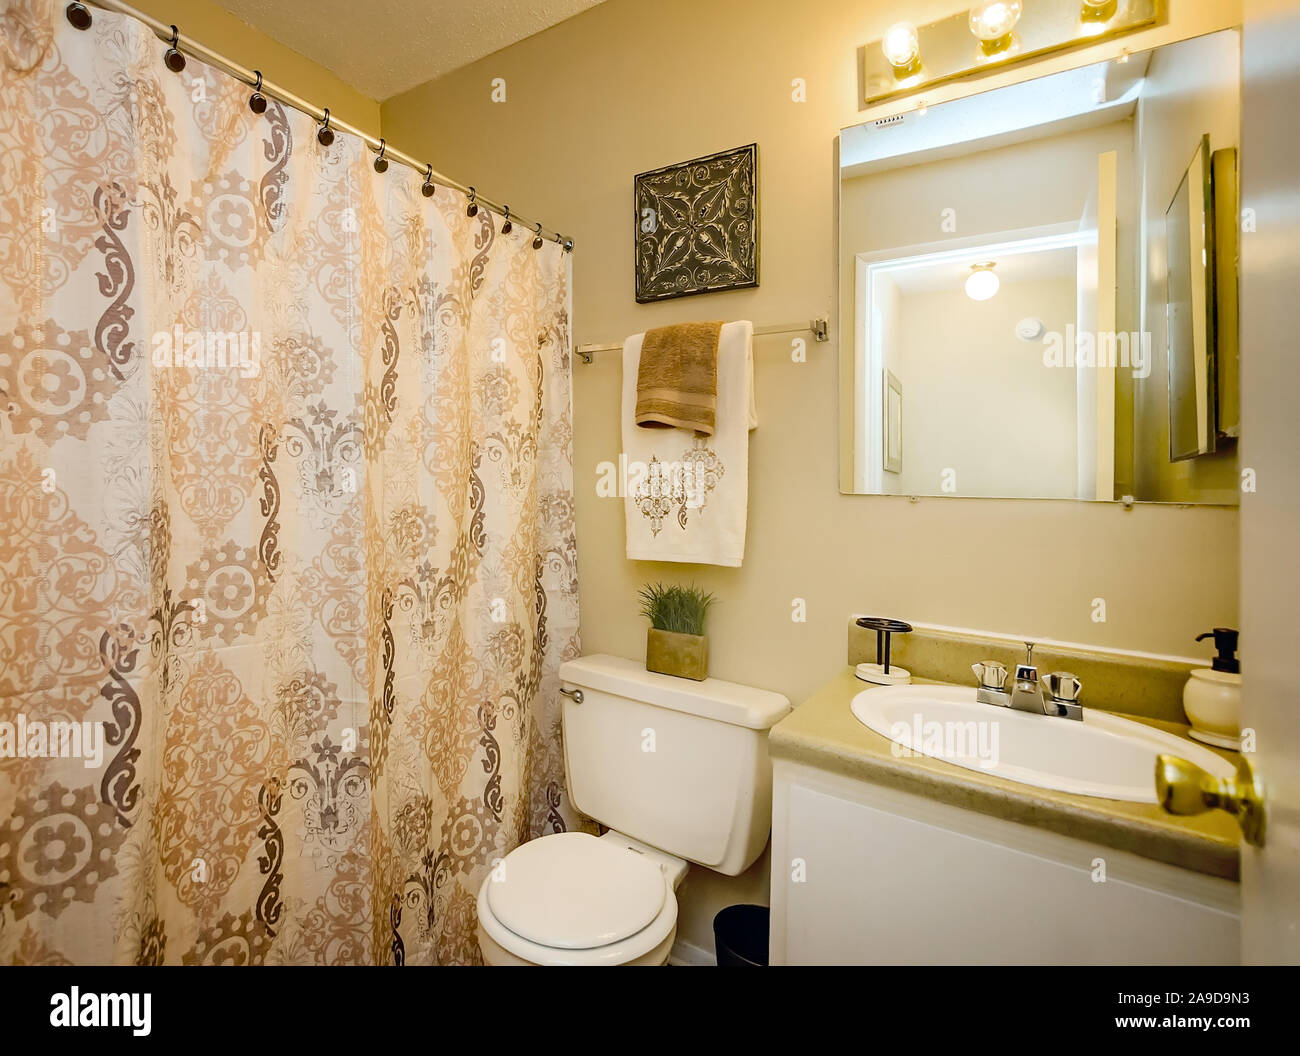 A bathroom at Autumn Woods Apartments, located on Foreman ...